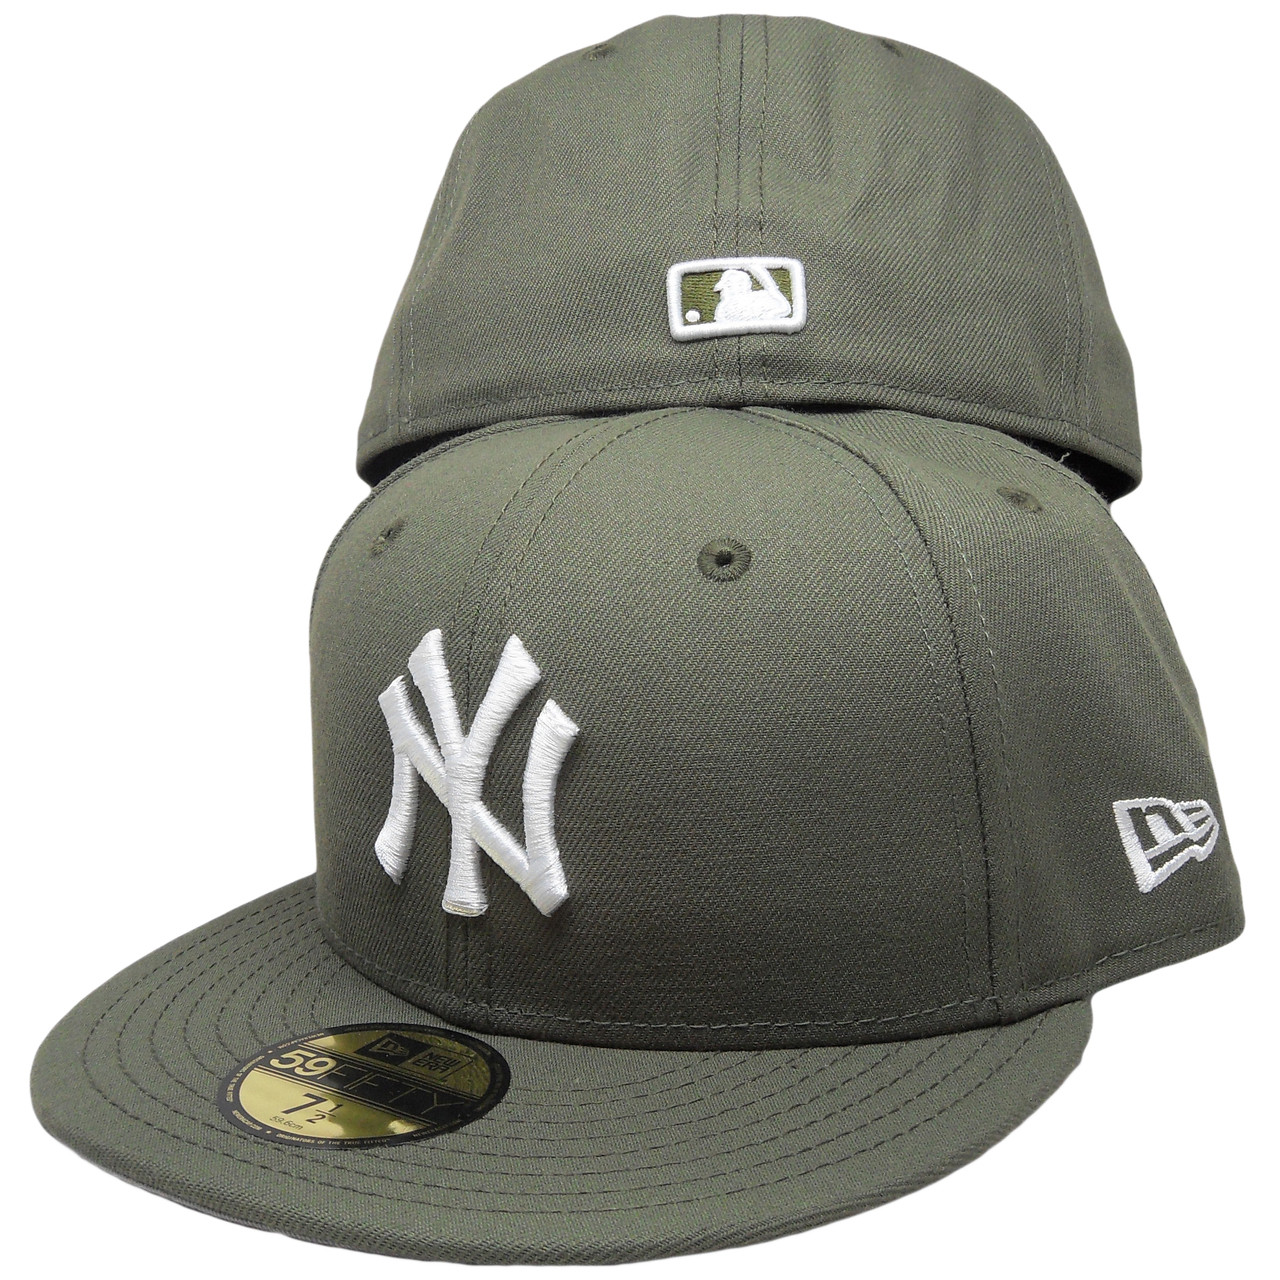 New York Yankees New Era Custom 59Fifty Fitted Hat - New Olive ... 53bb35ca82f8